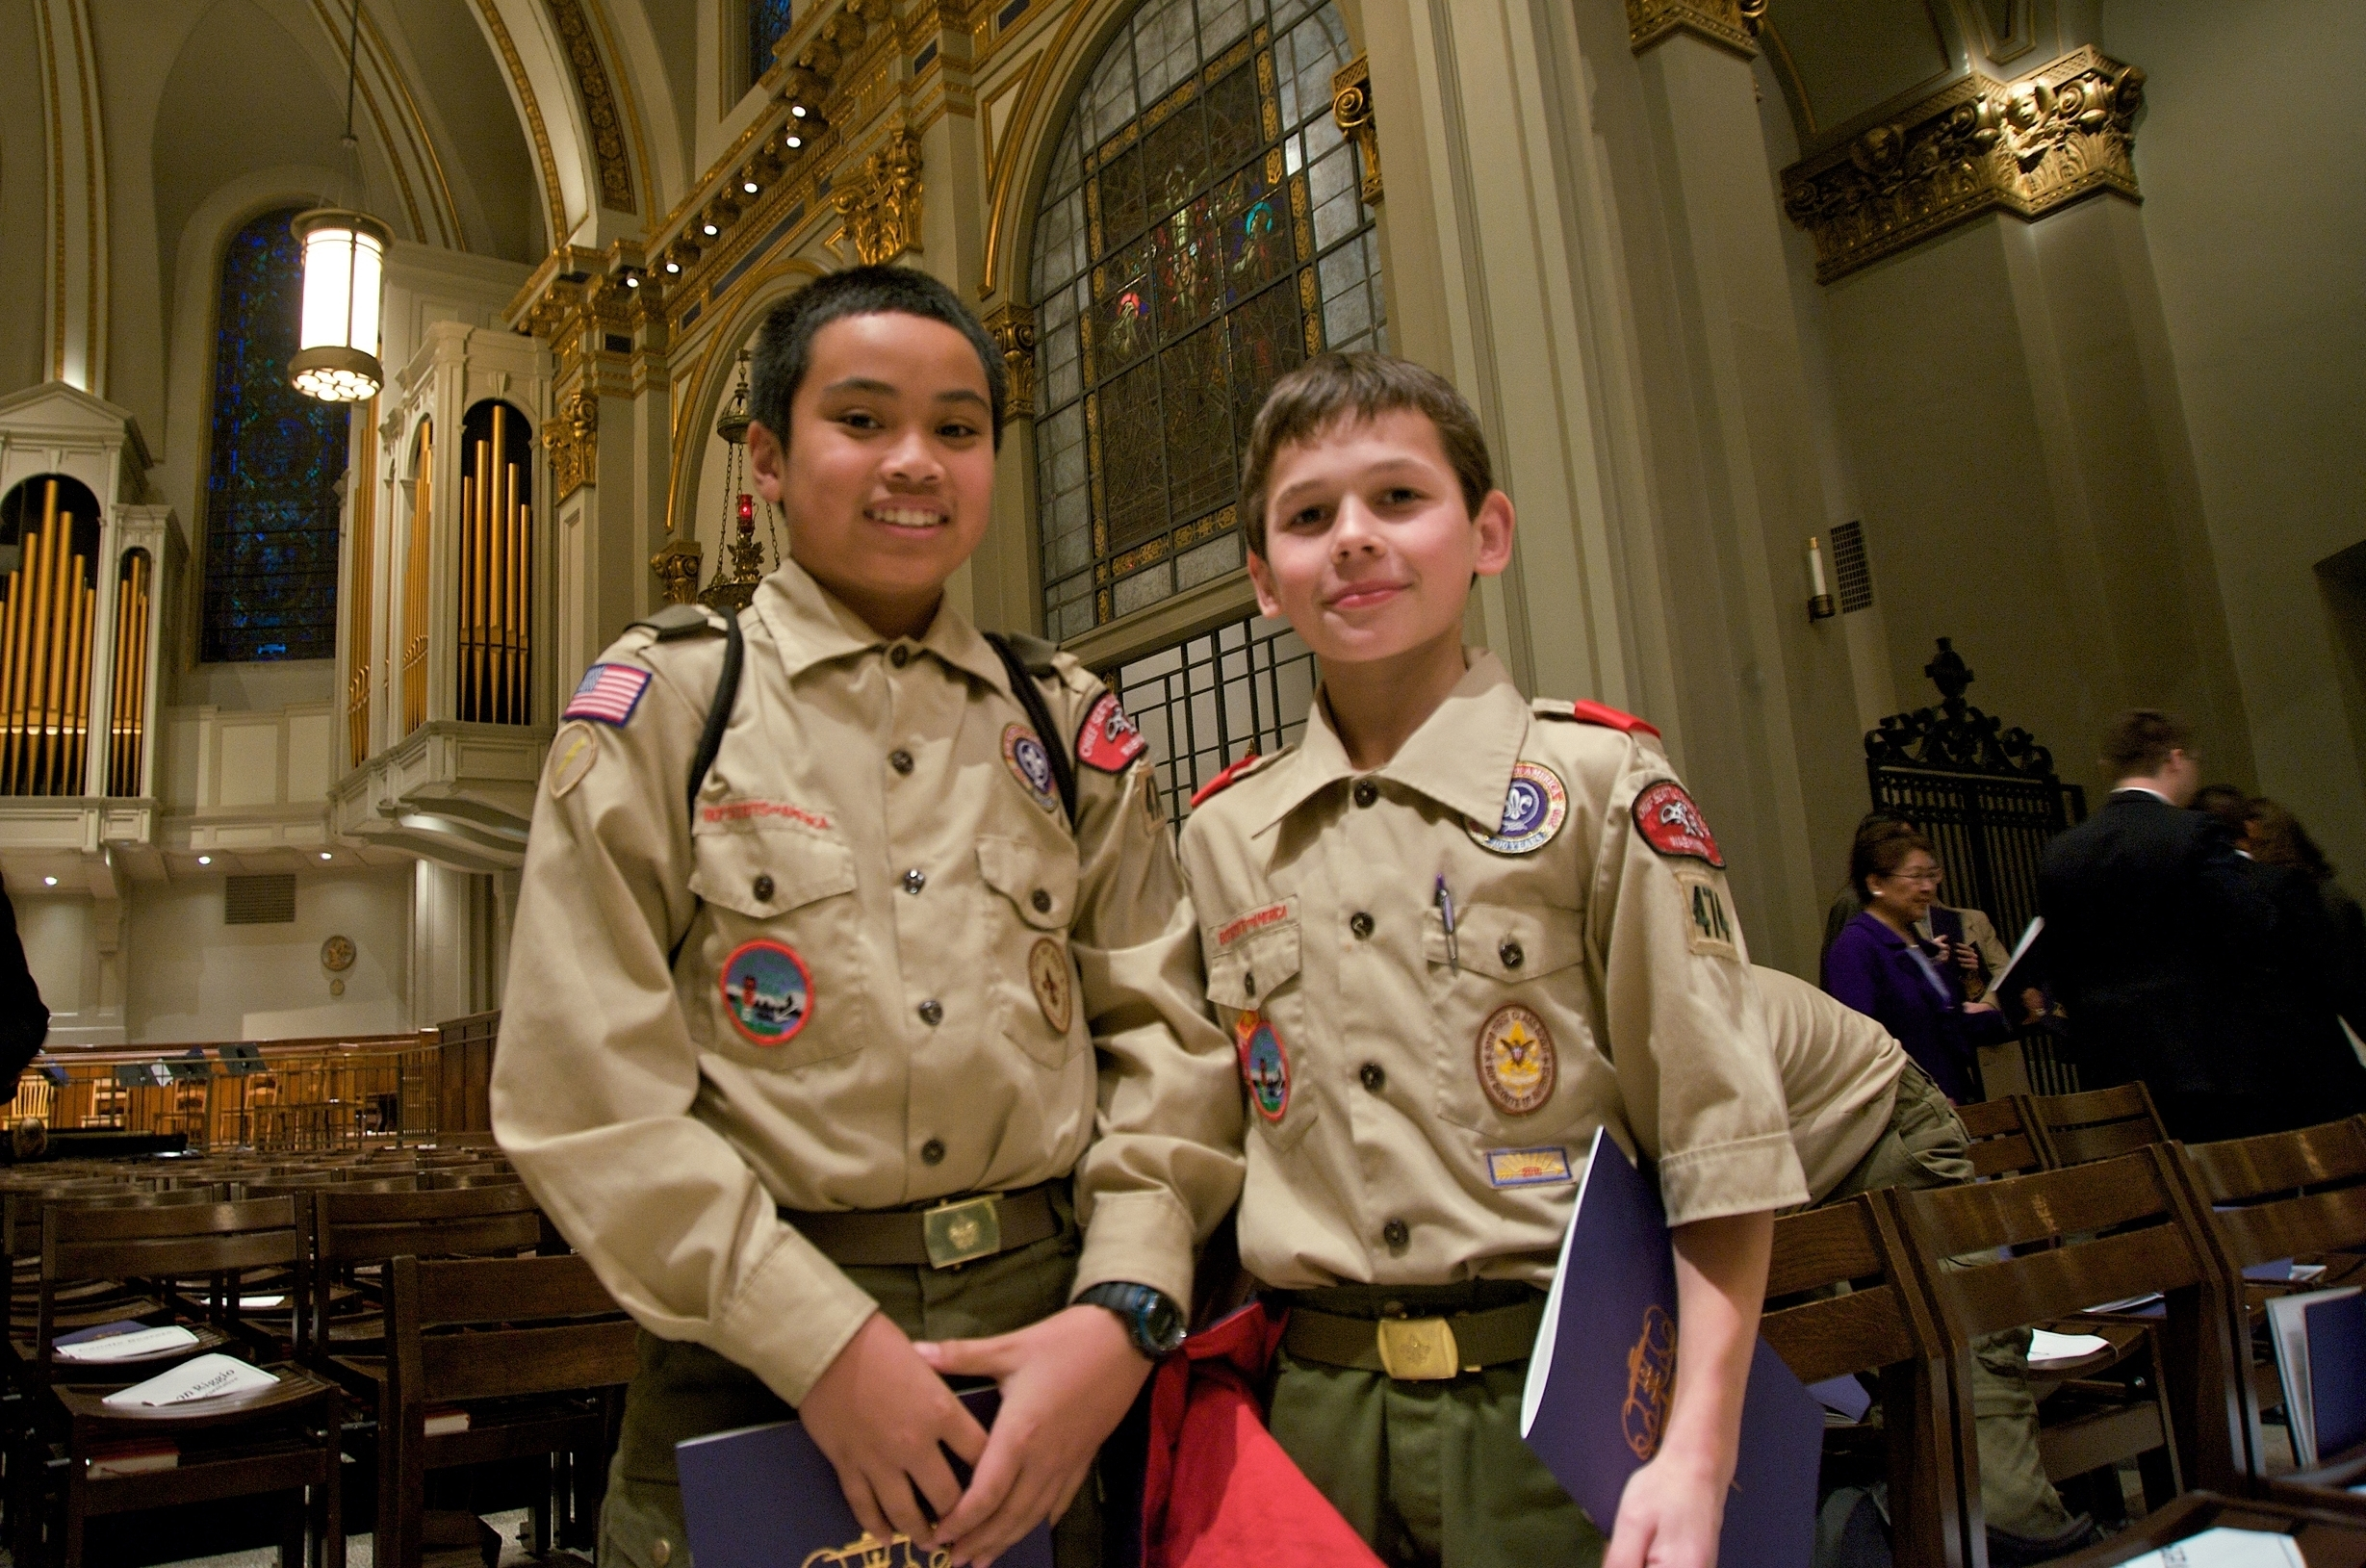 Two boy scouts at St. James Cathedral in Seattle, December 1, 2010